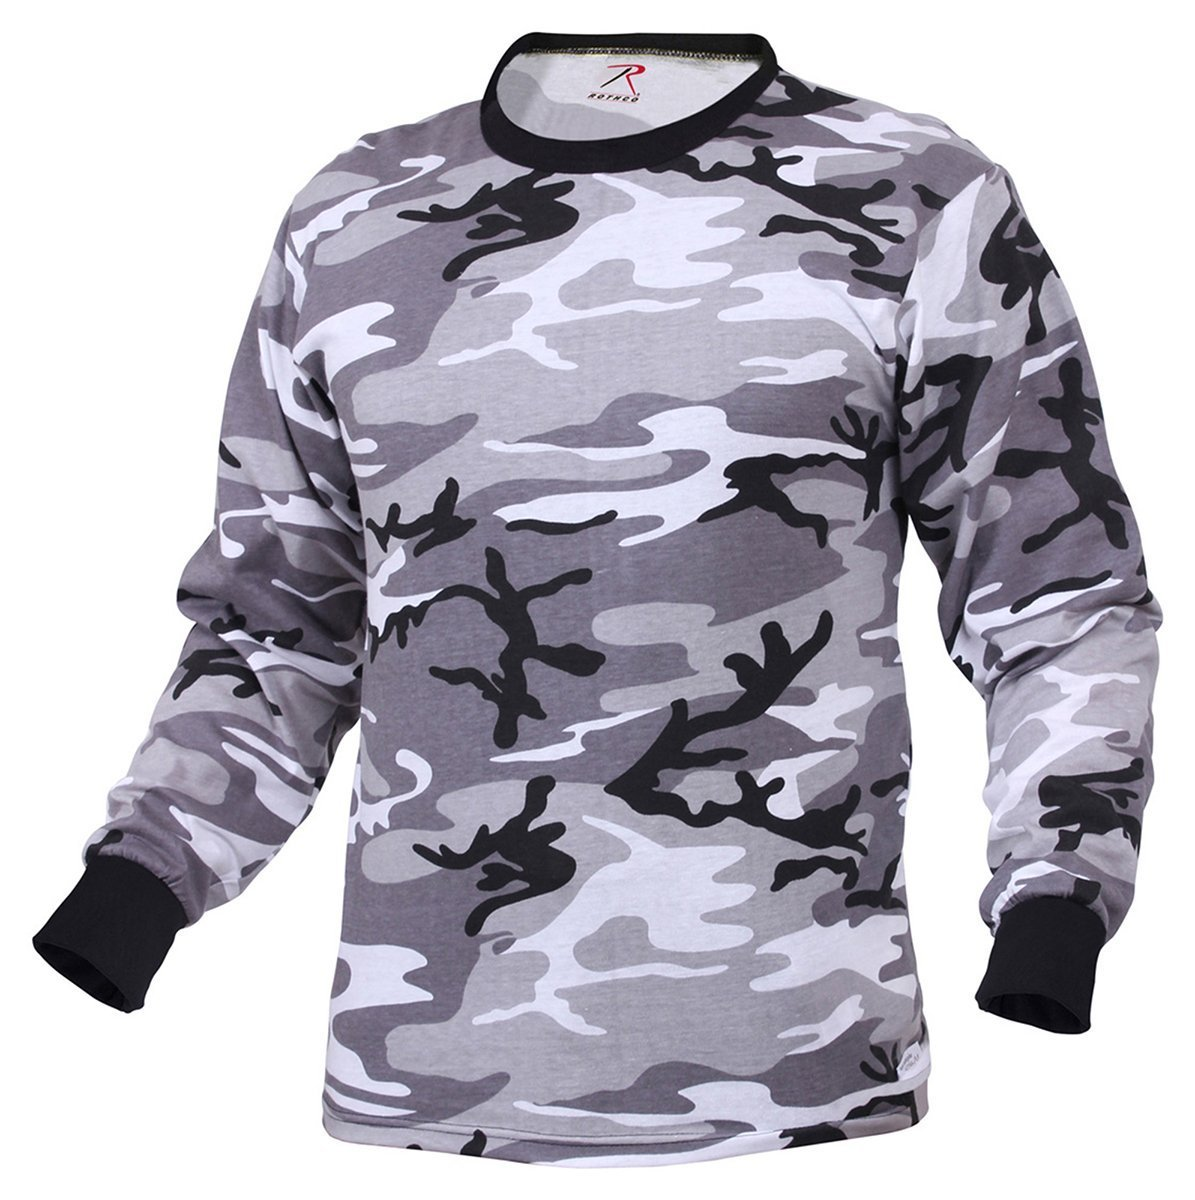 Rothco Long Sleeve T-Shirt, City Camo, 2X RSR Group Inc 67791